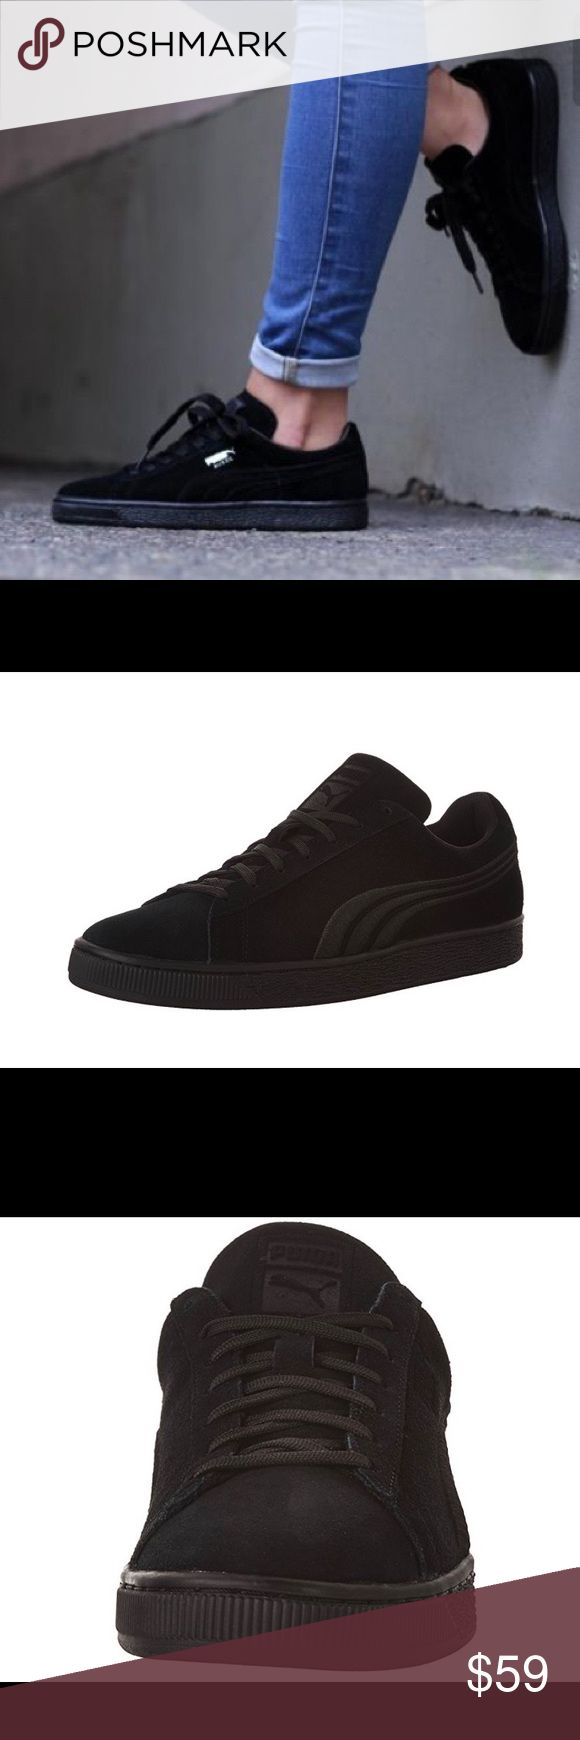 NWT Black Suede Puma Sneaker Men's 7/ Women's 8.5 Super cute black suede sneakers. Brand new but were too big for me :( Puma Shoes Sneakers